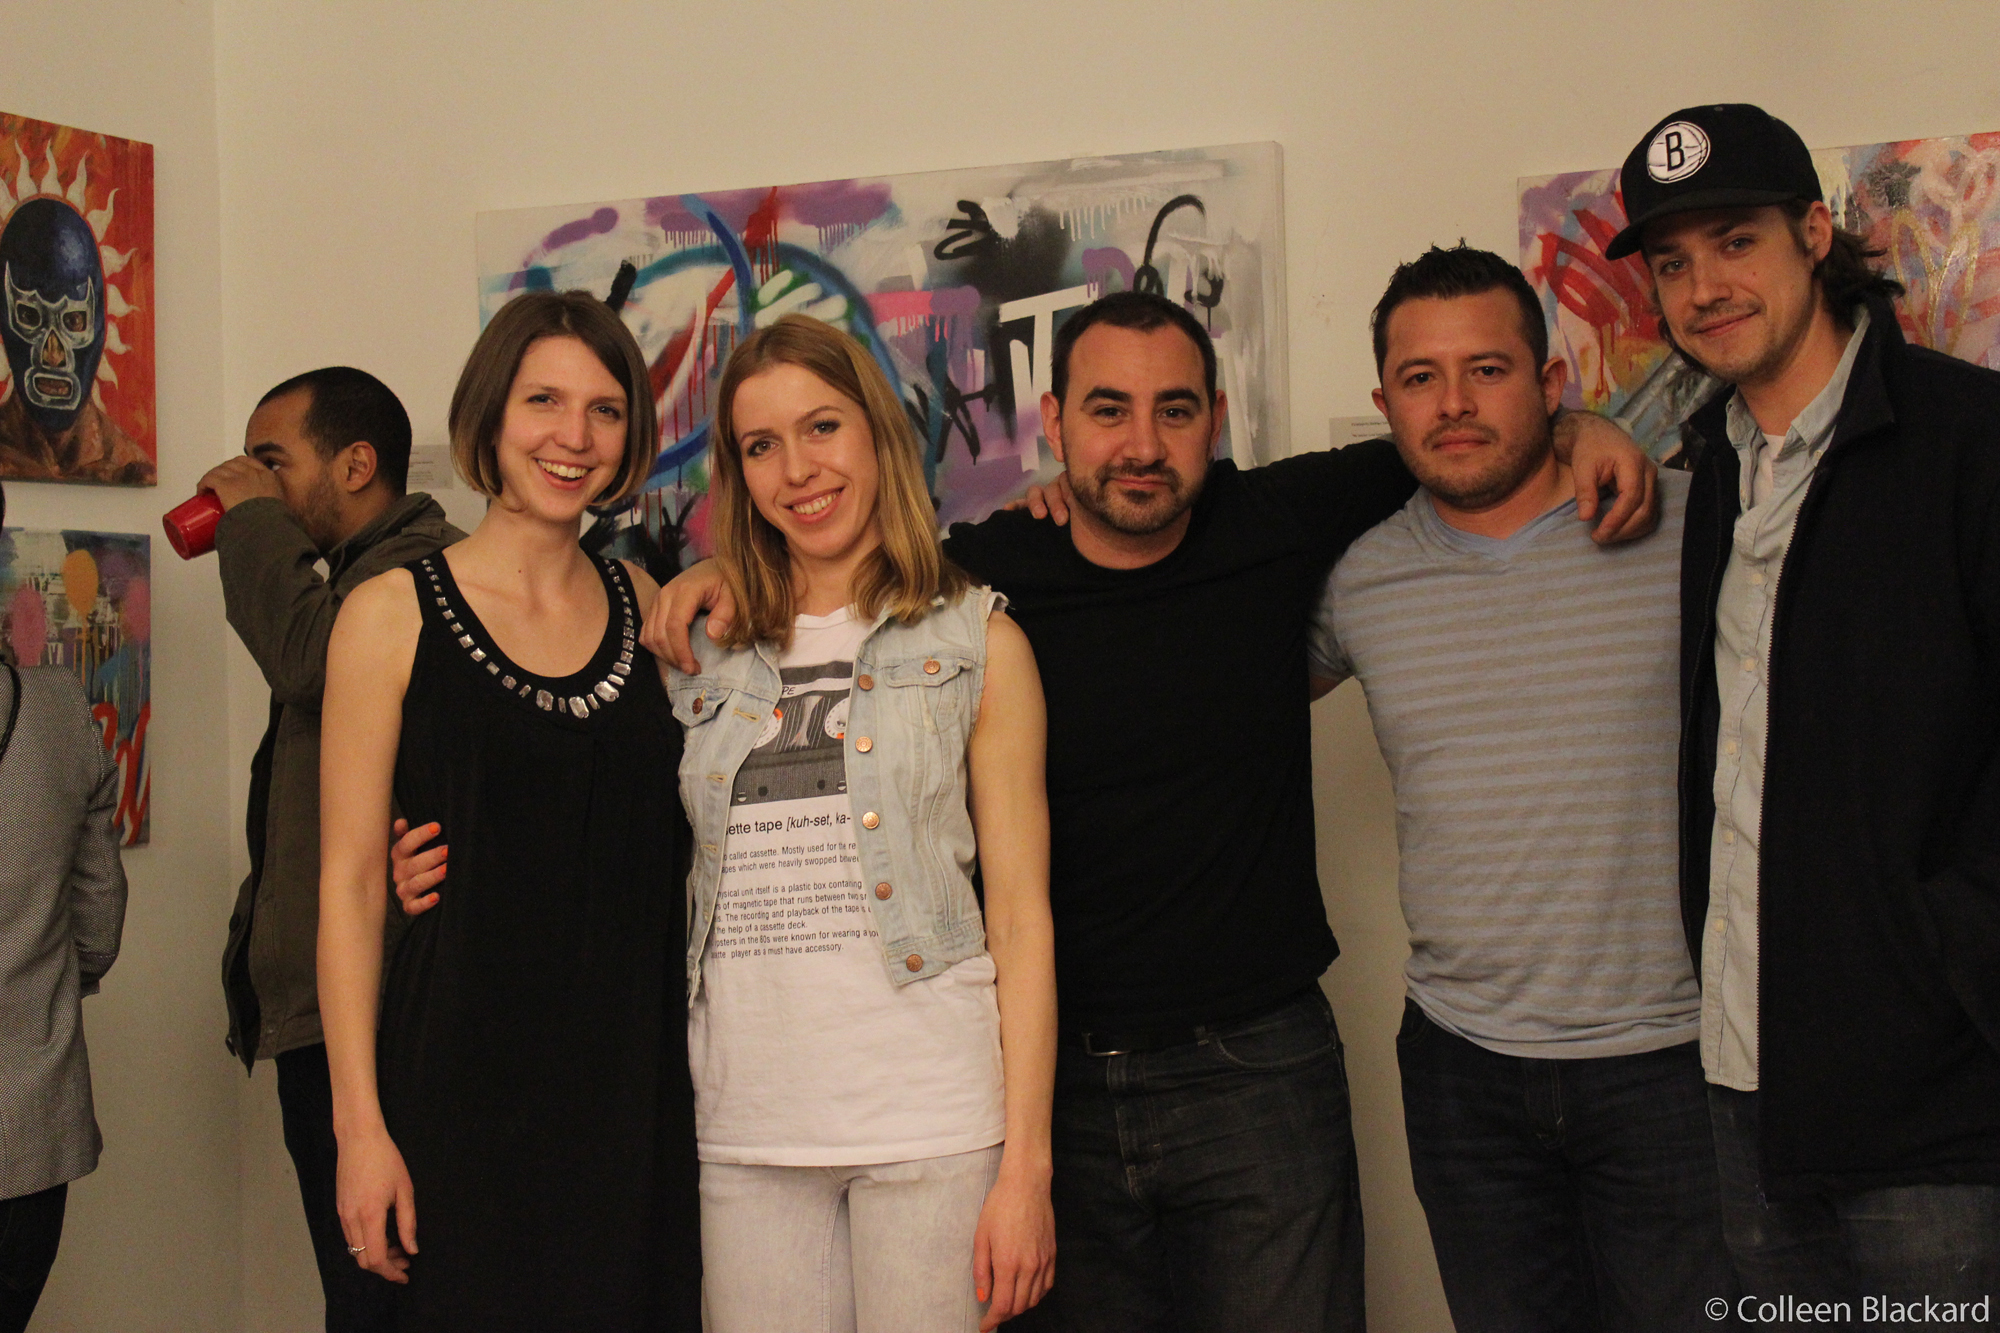 (L – R) Colleen Blackard, Zofia Bogusz , Mike Wolf, Rodrigo Valles, and Steve Wastervalalles